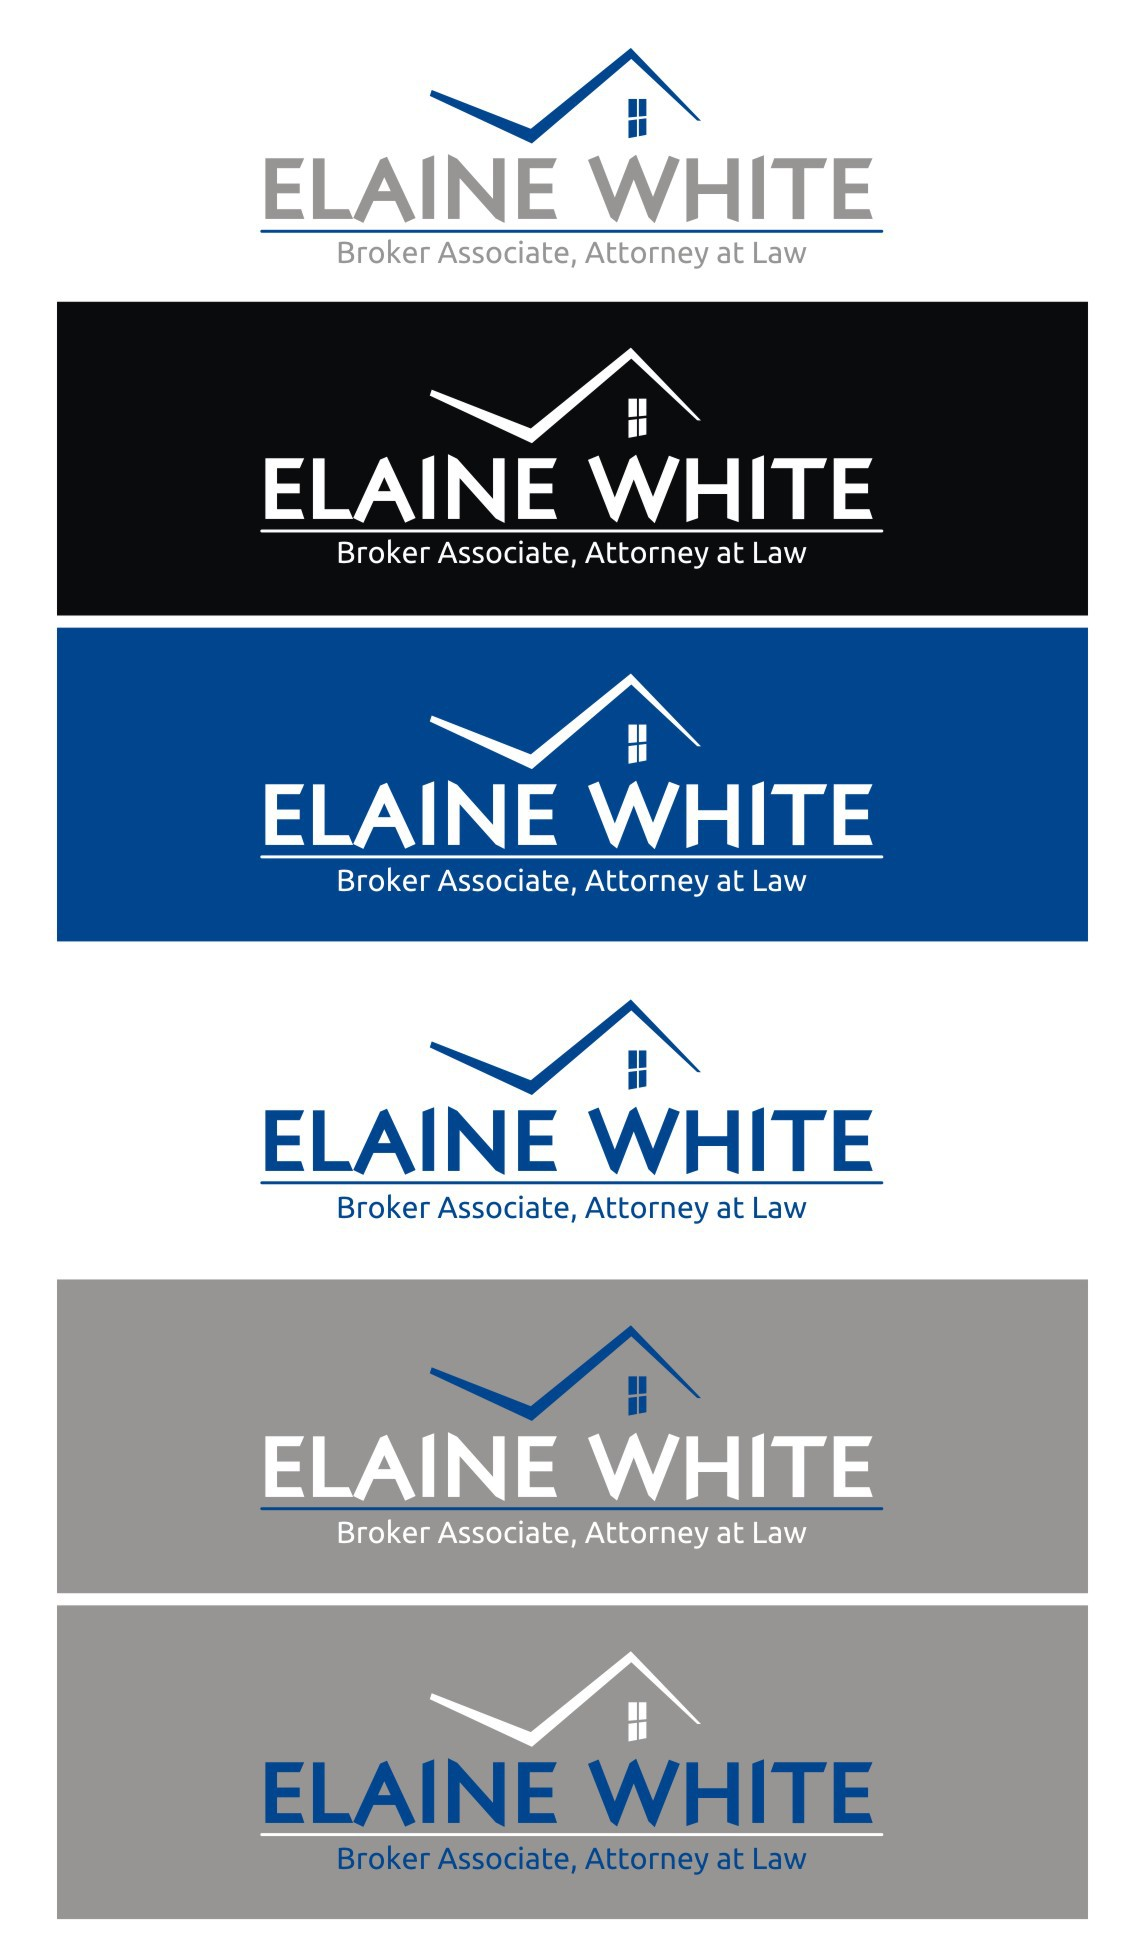 New logo wanted for Elaine White